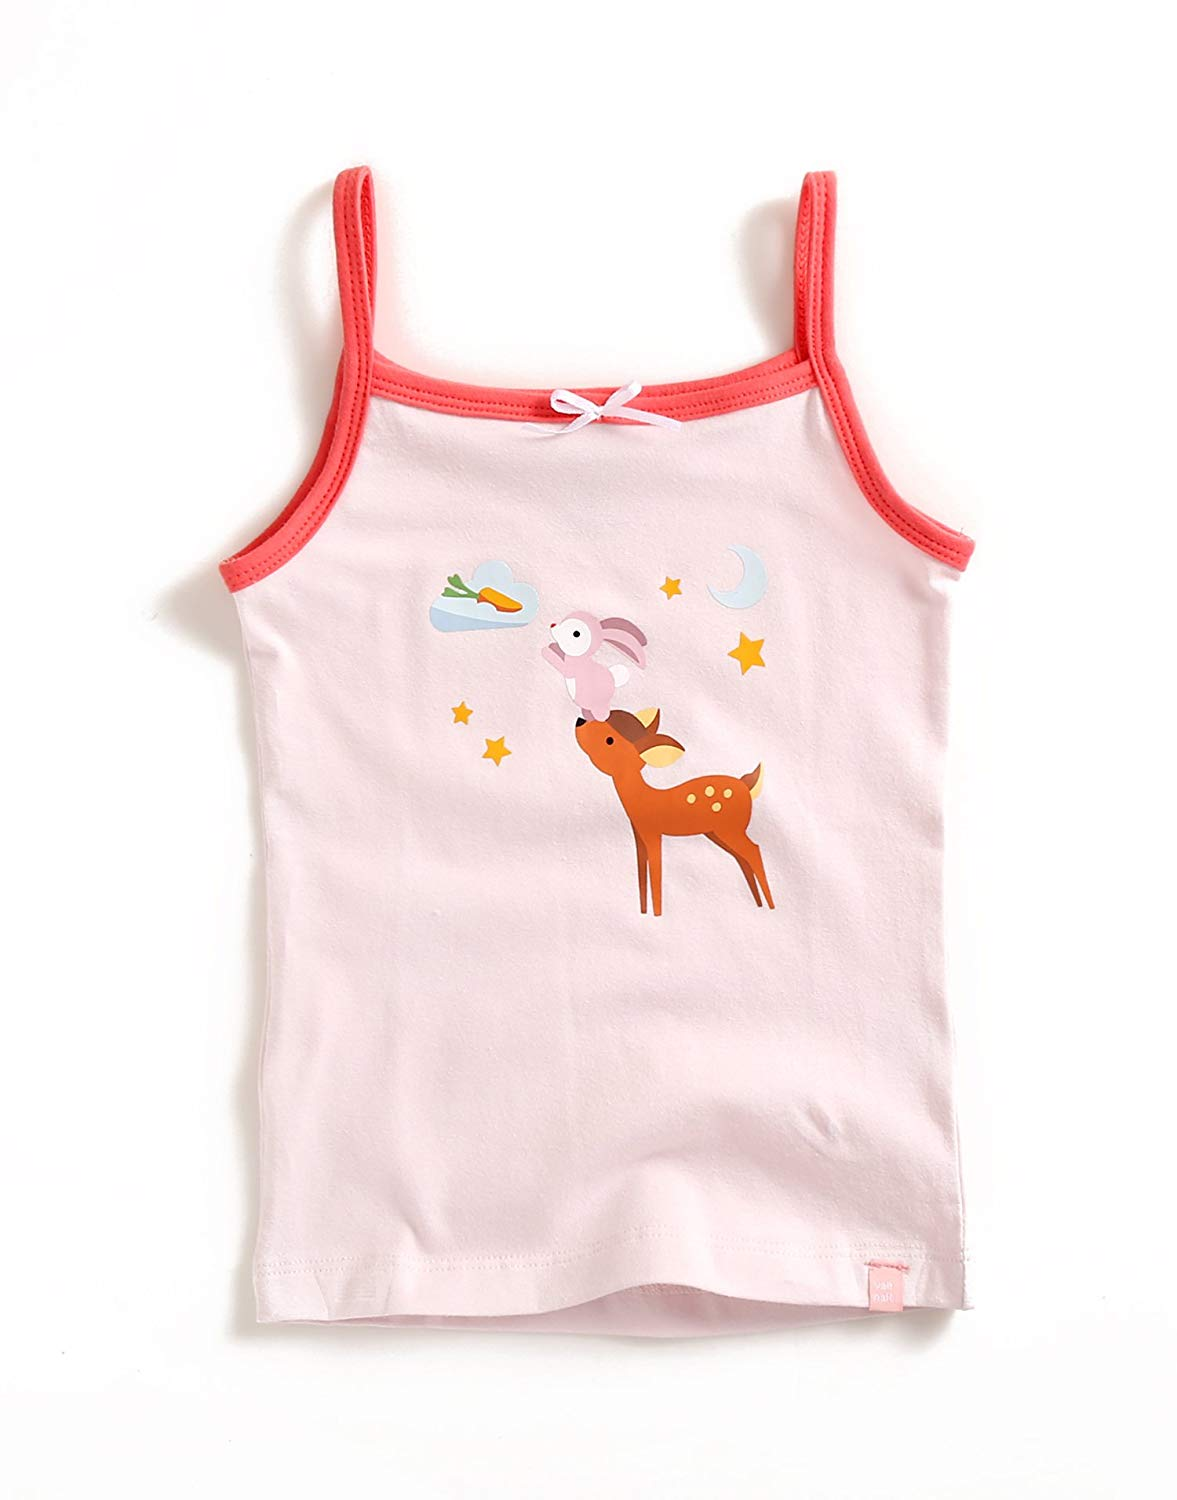 Deer Sleeveless Tank Top